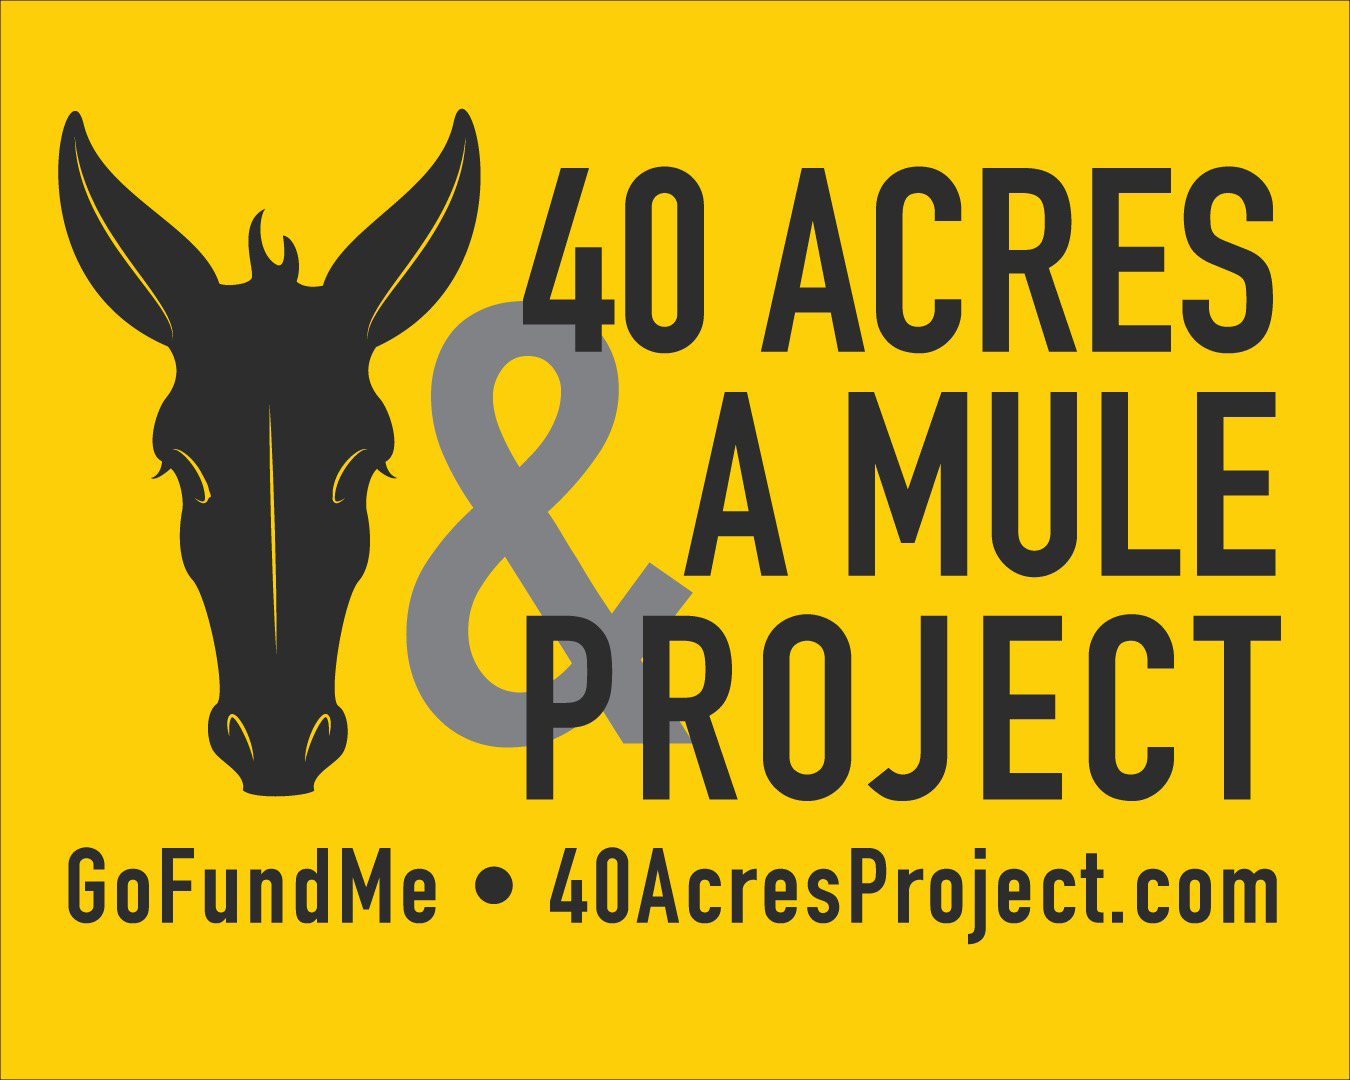 40 Acres And A Mule Project